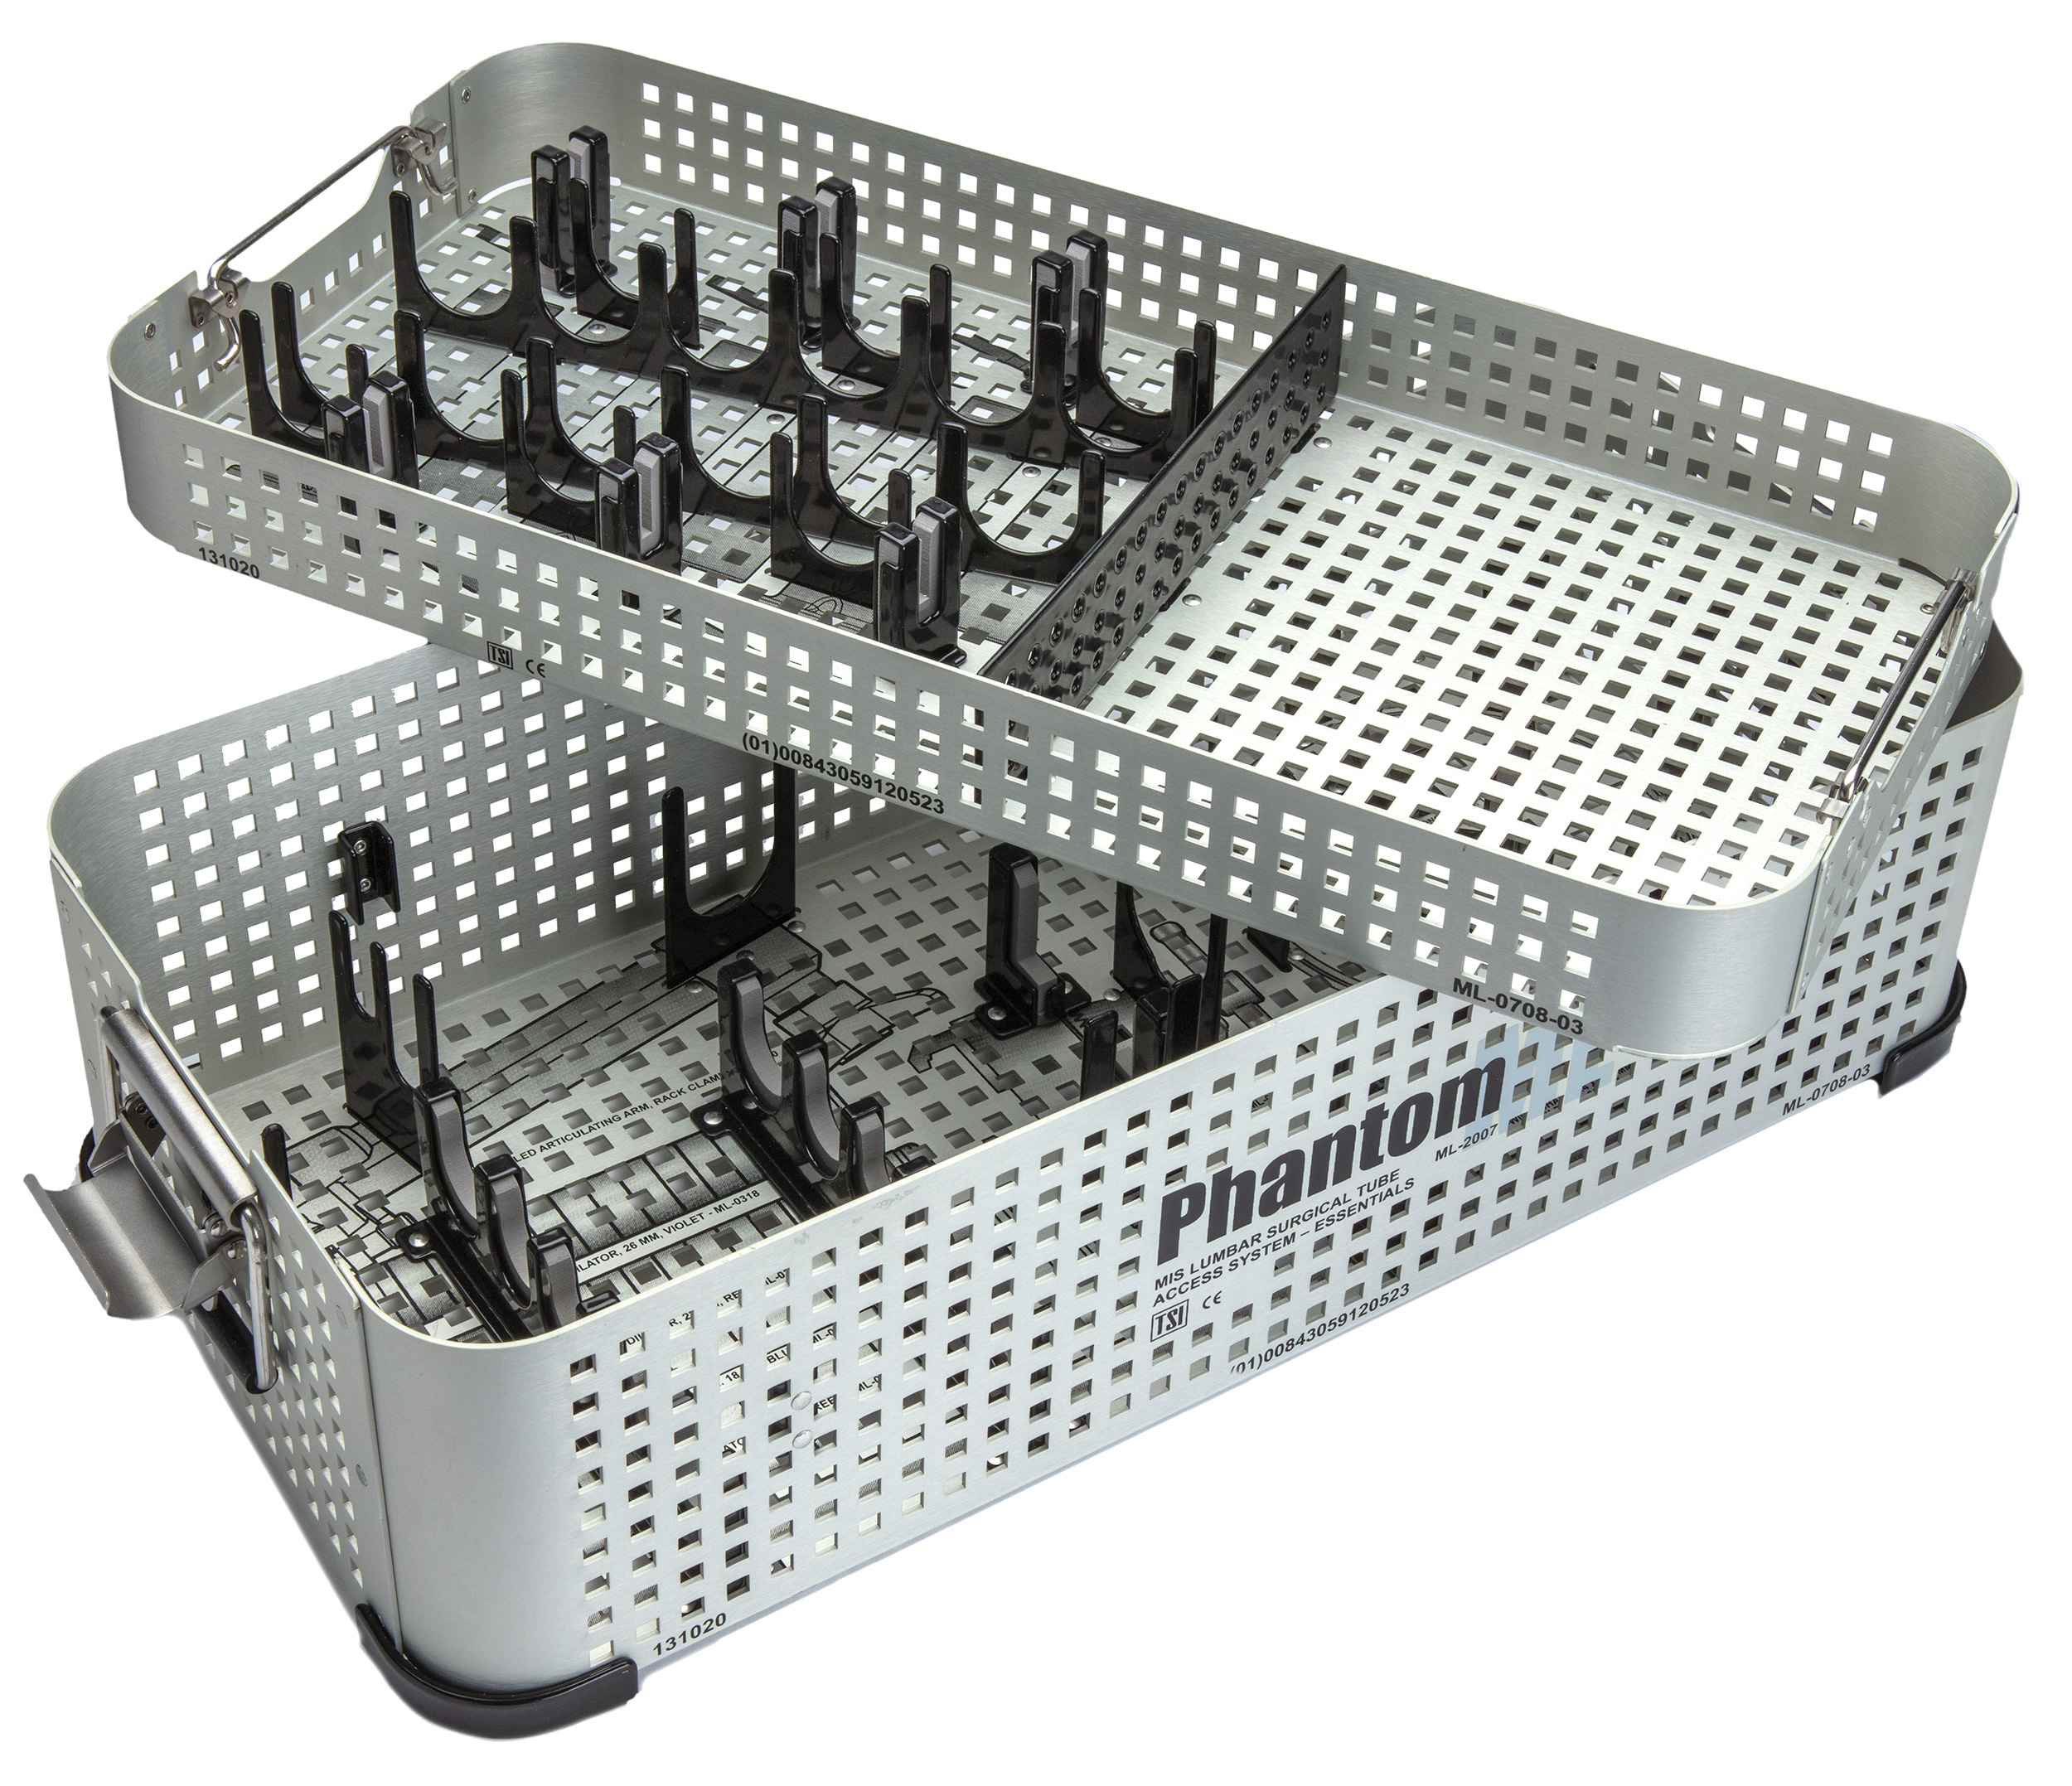 Modular surgical instrument case